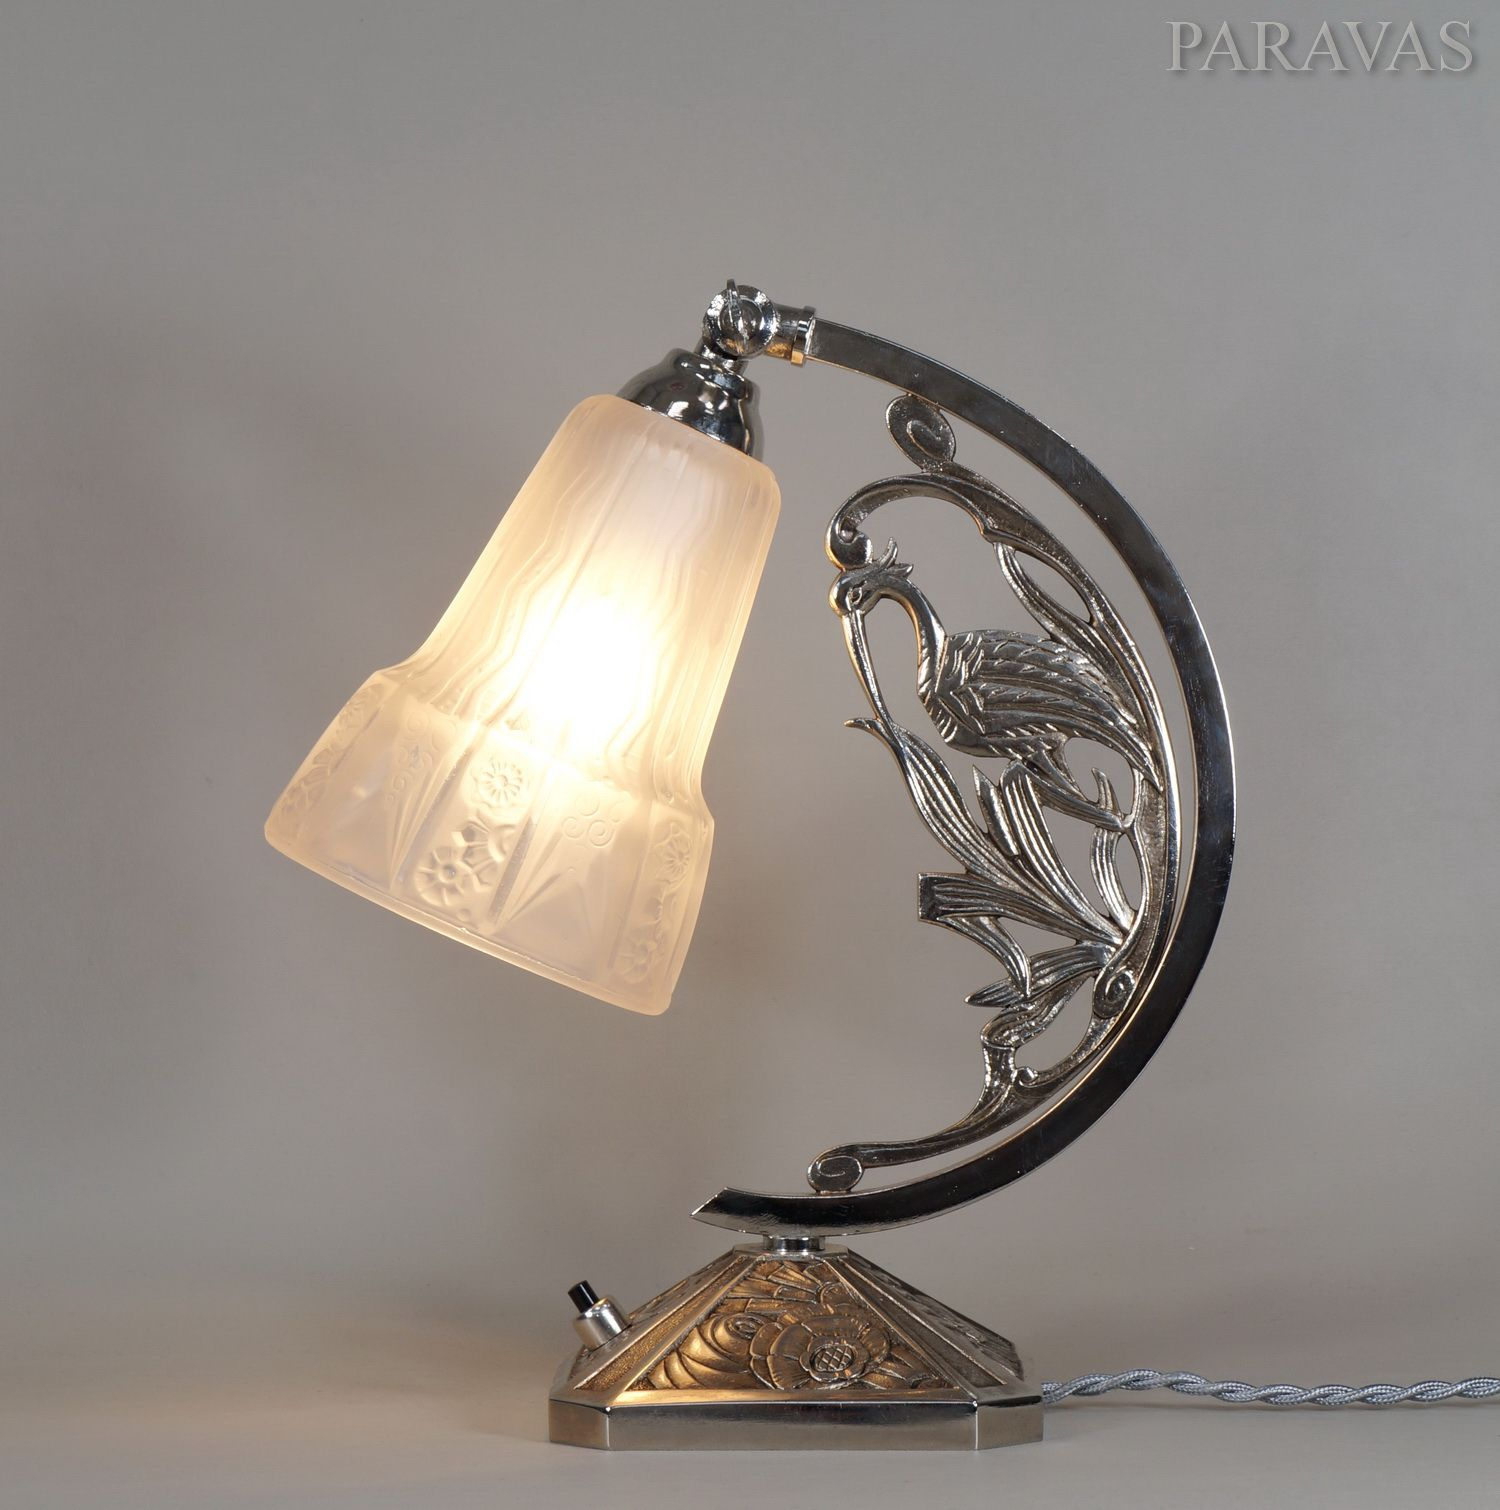 silver ebay shade shades globe antique for uk x floor bridge glass s vintage light base behind marble arc lamp brass value px with parts curved lighted lamps replacement